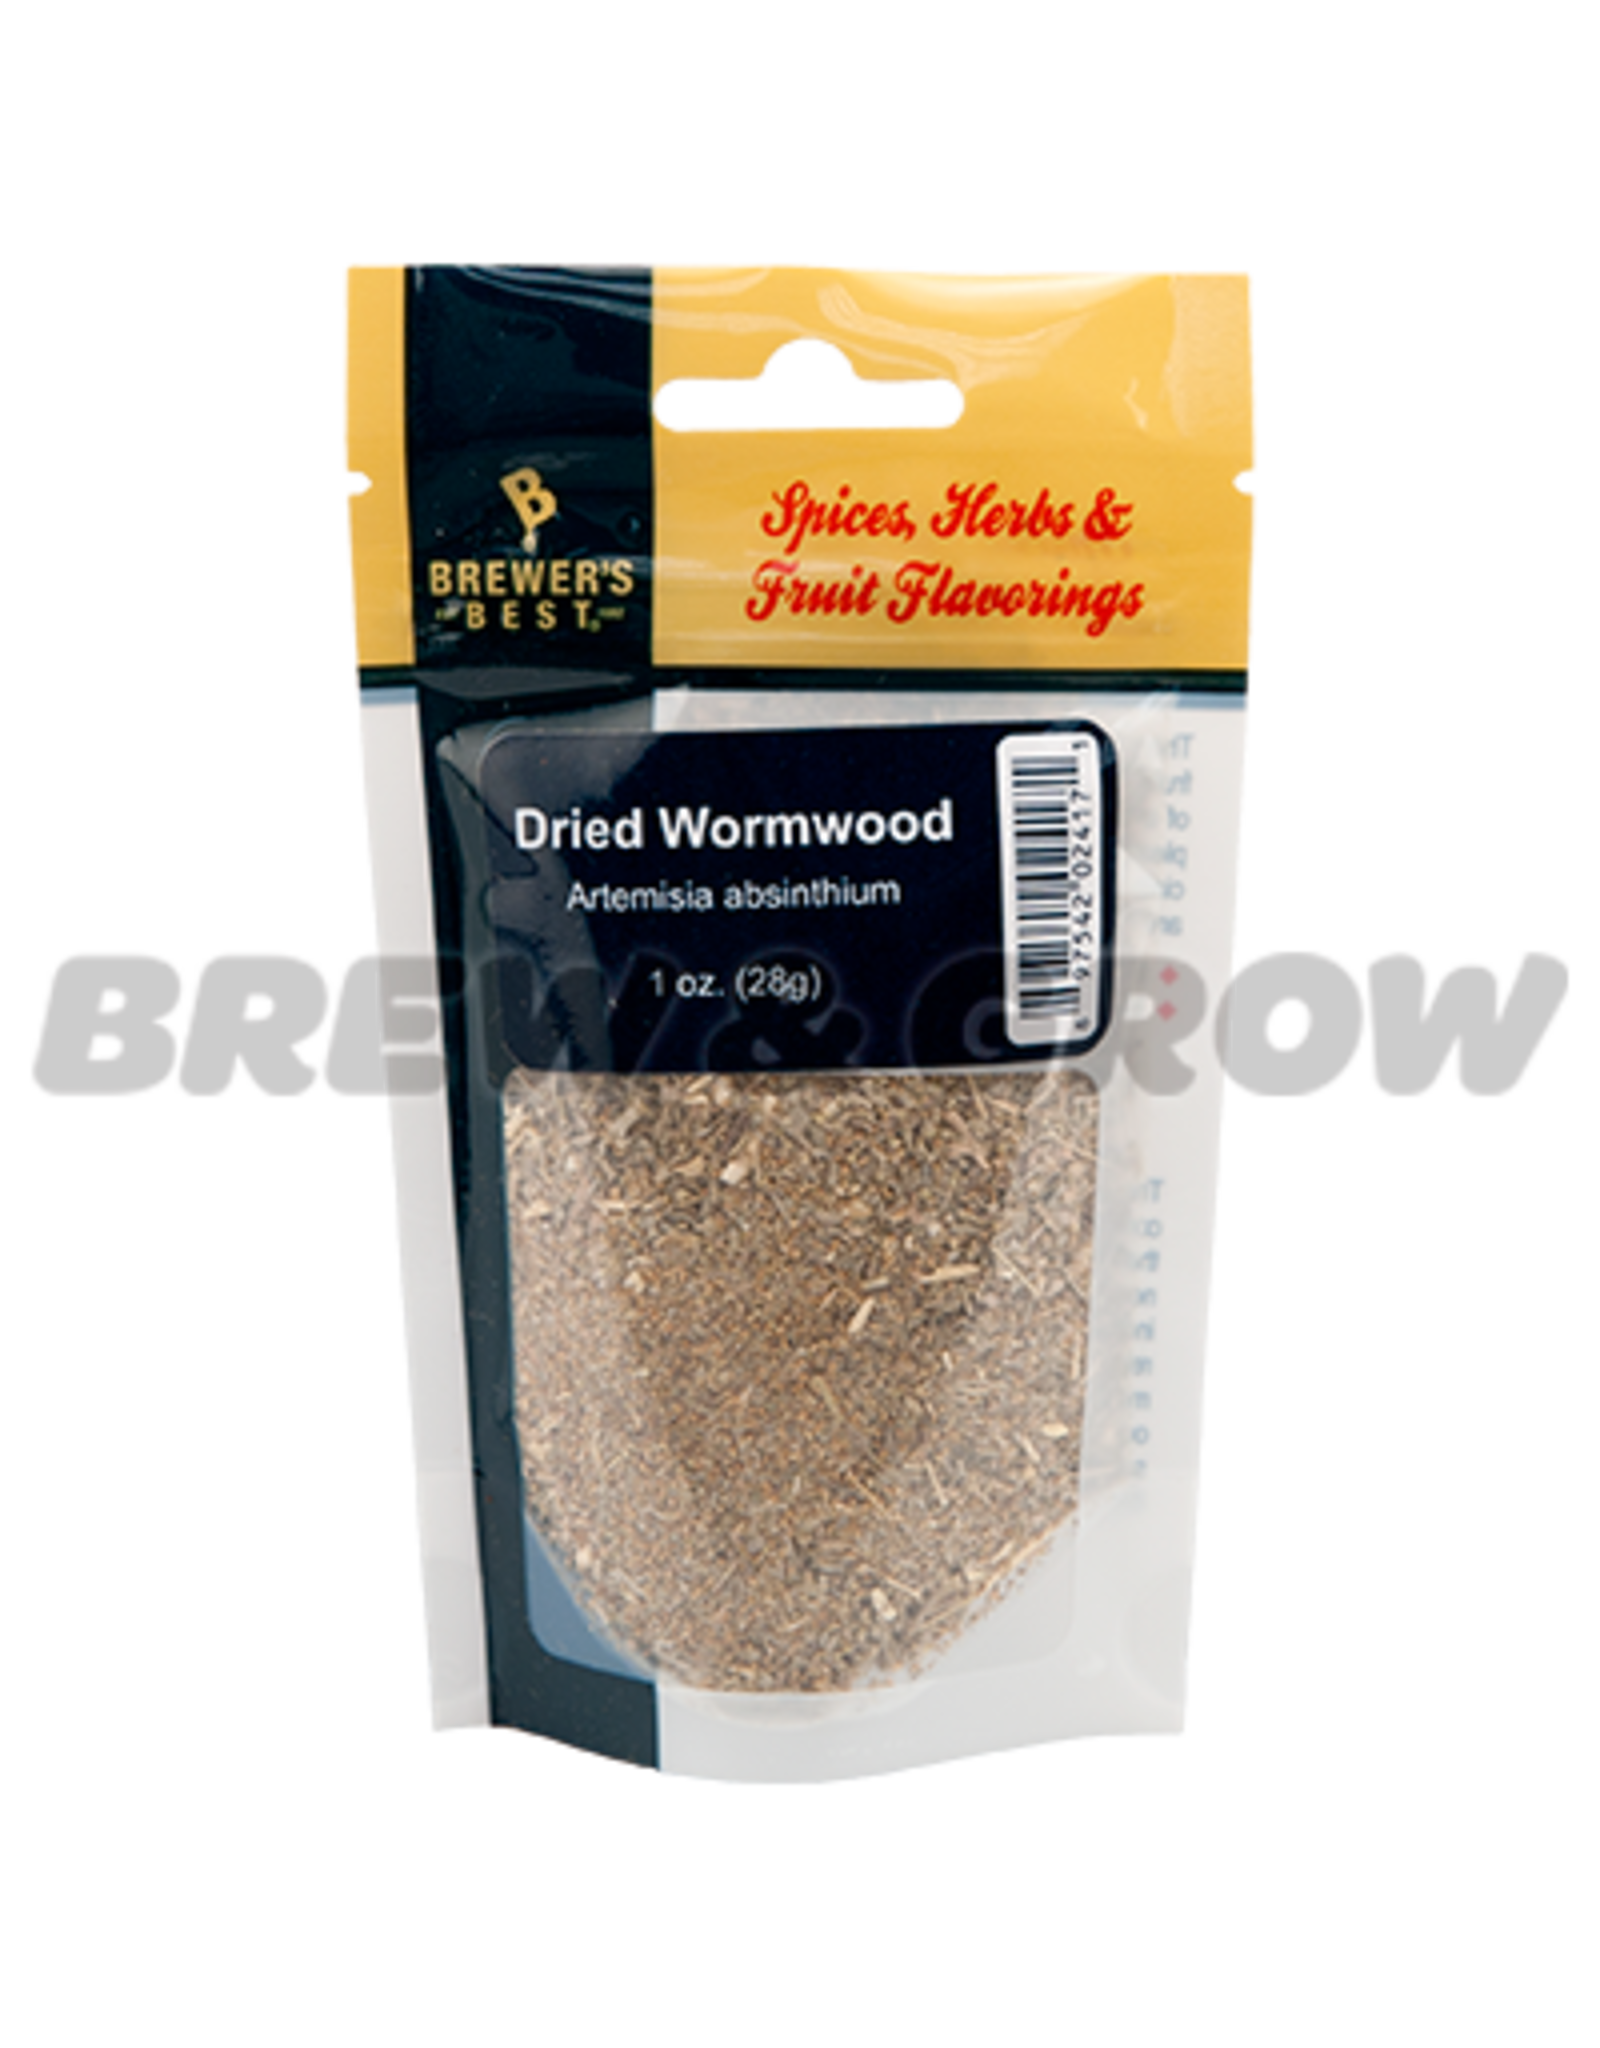 Flavoring - Dried Wormwood 1 oz